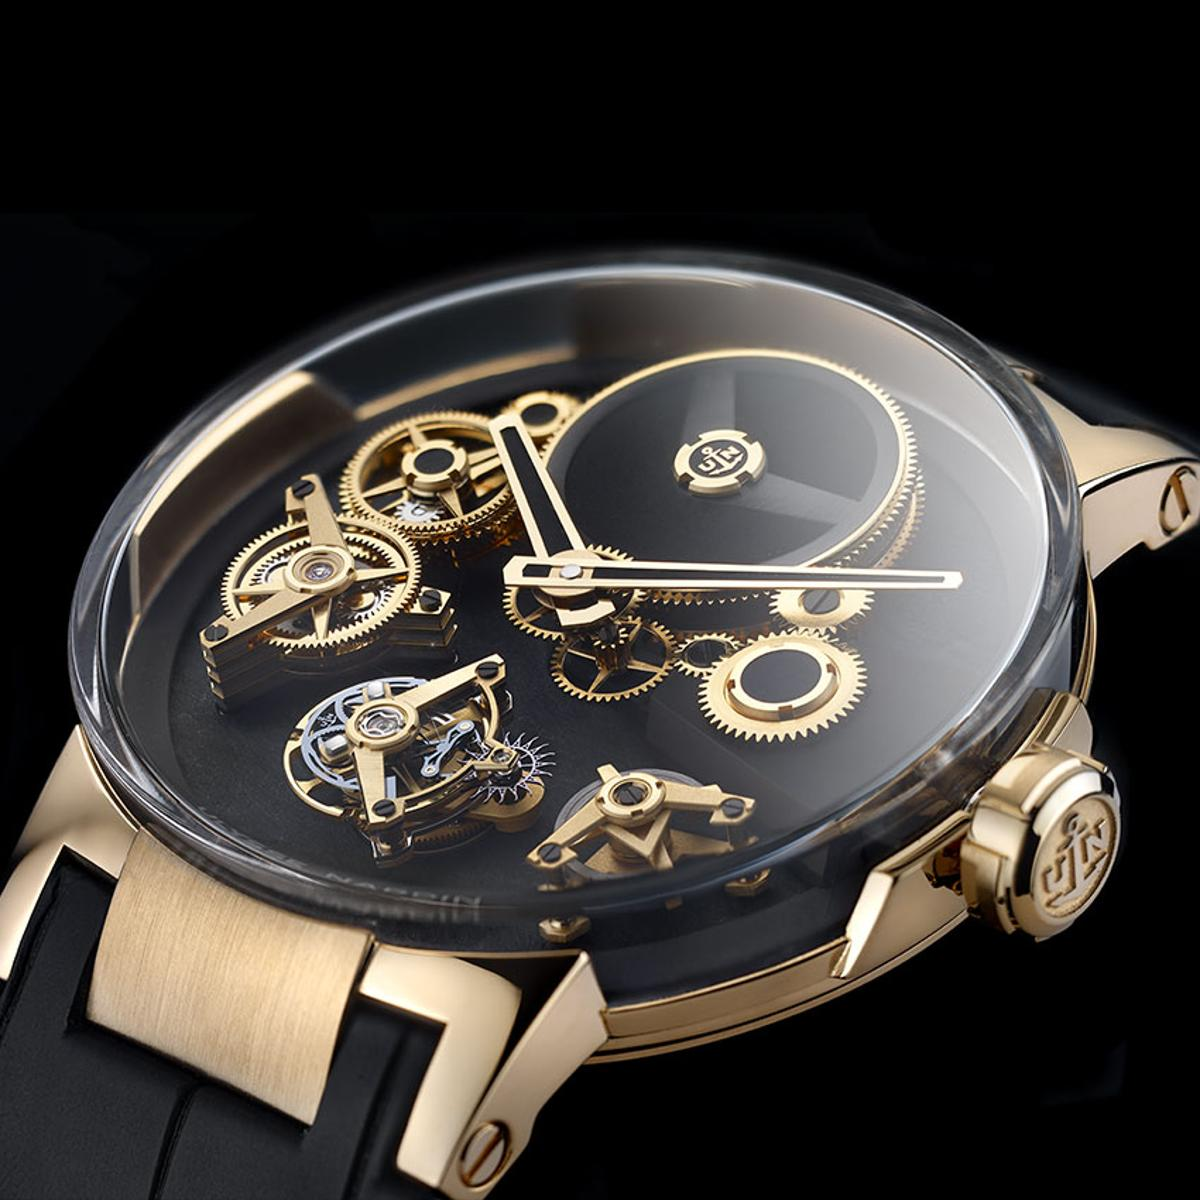 TheUlysses Nardin Executive Tourbillon Free Wheel has a movement where the components seem to operate without touching one another